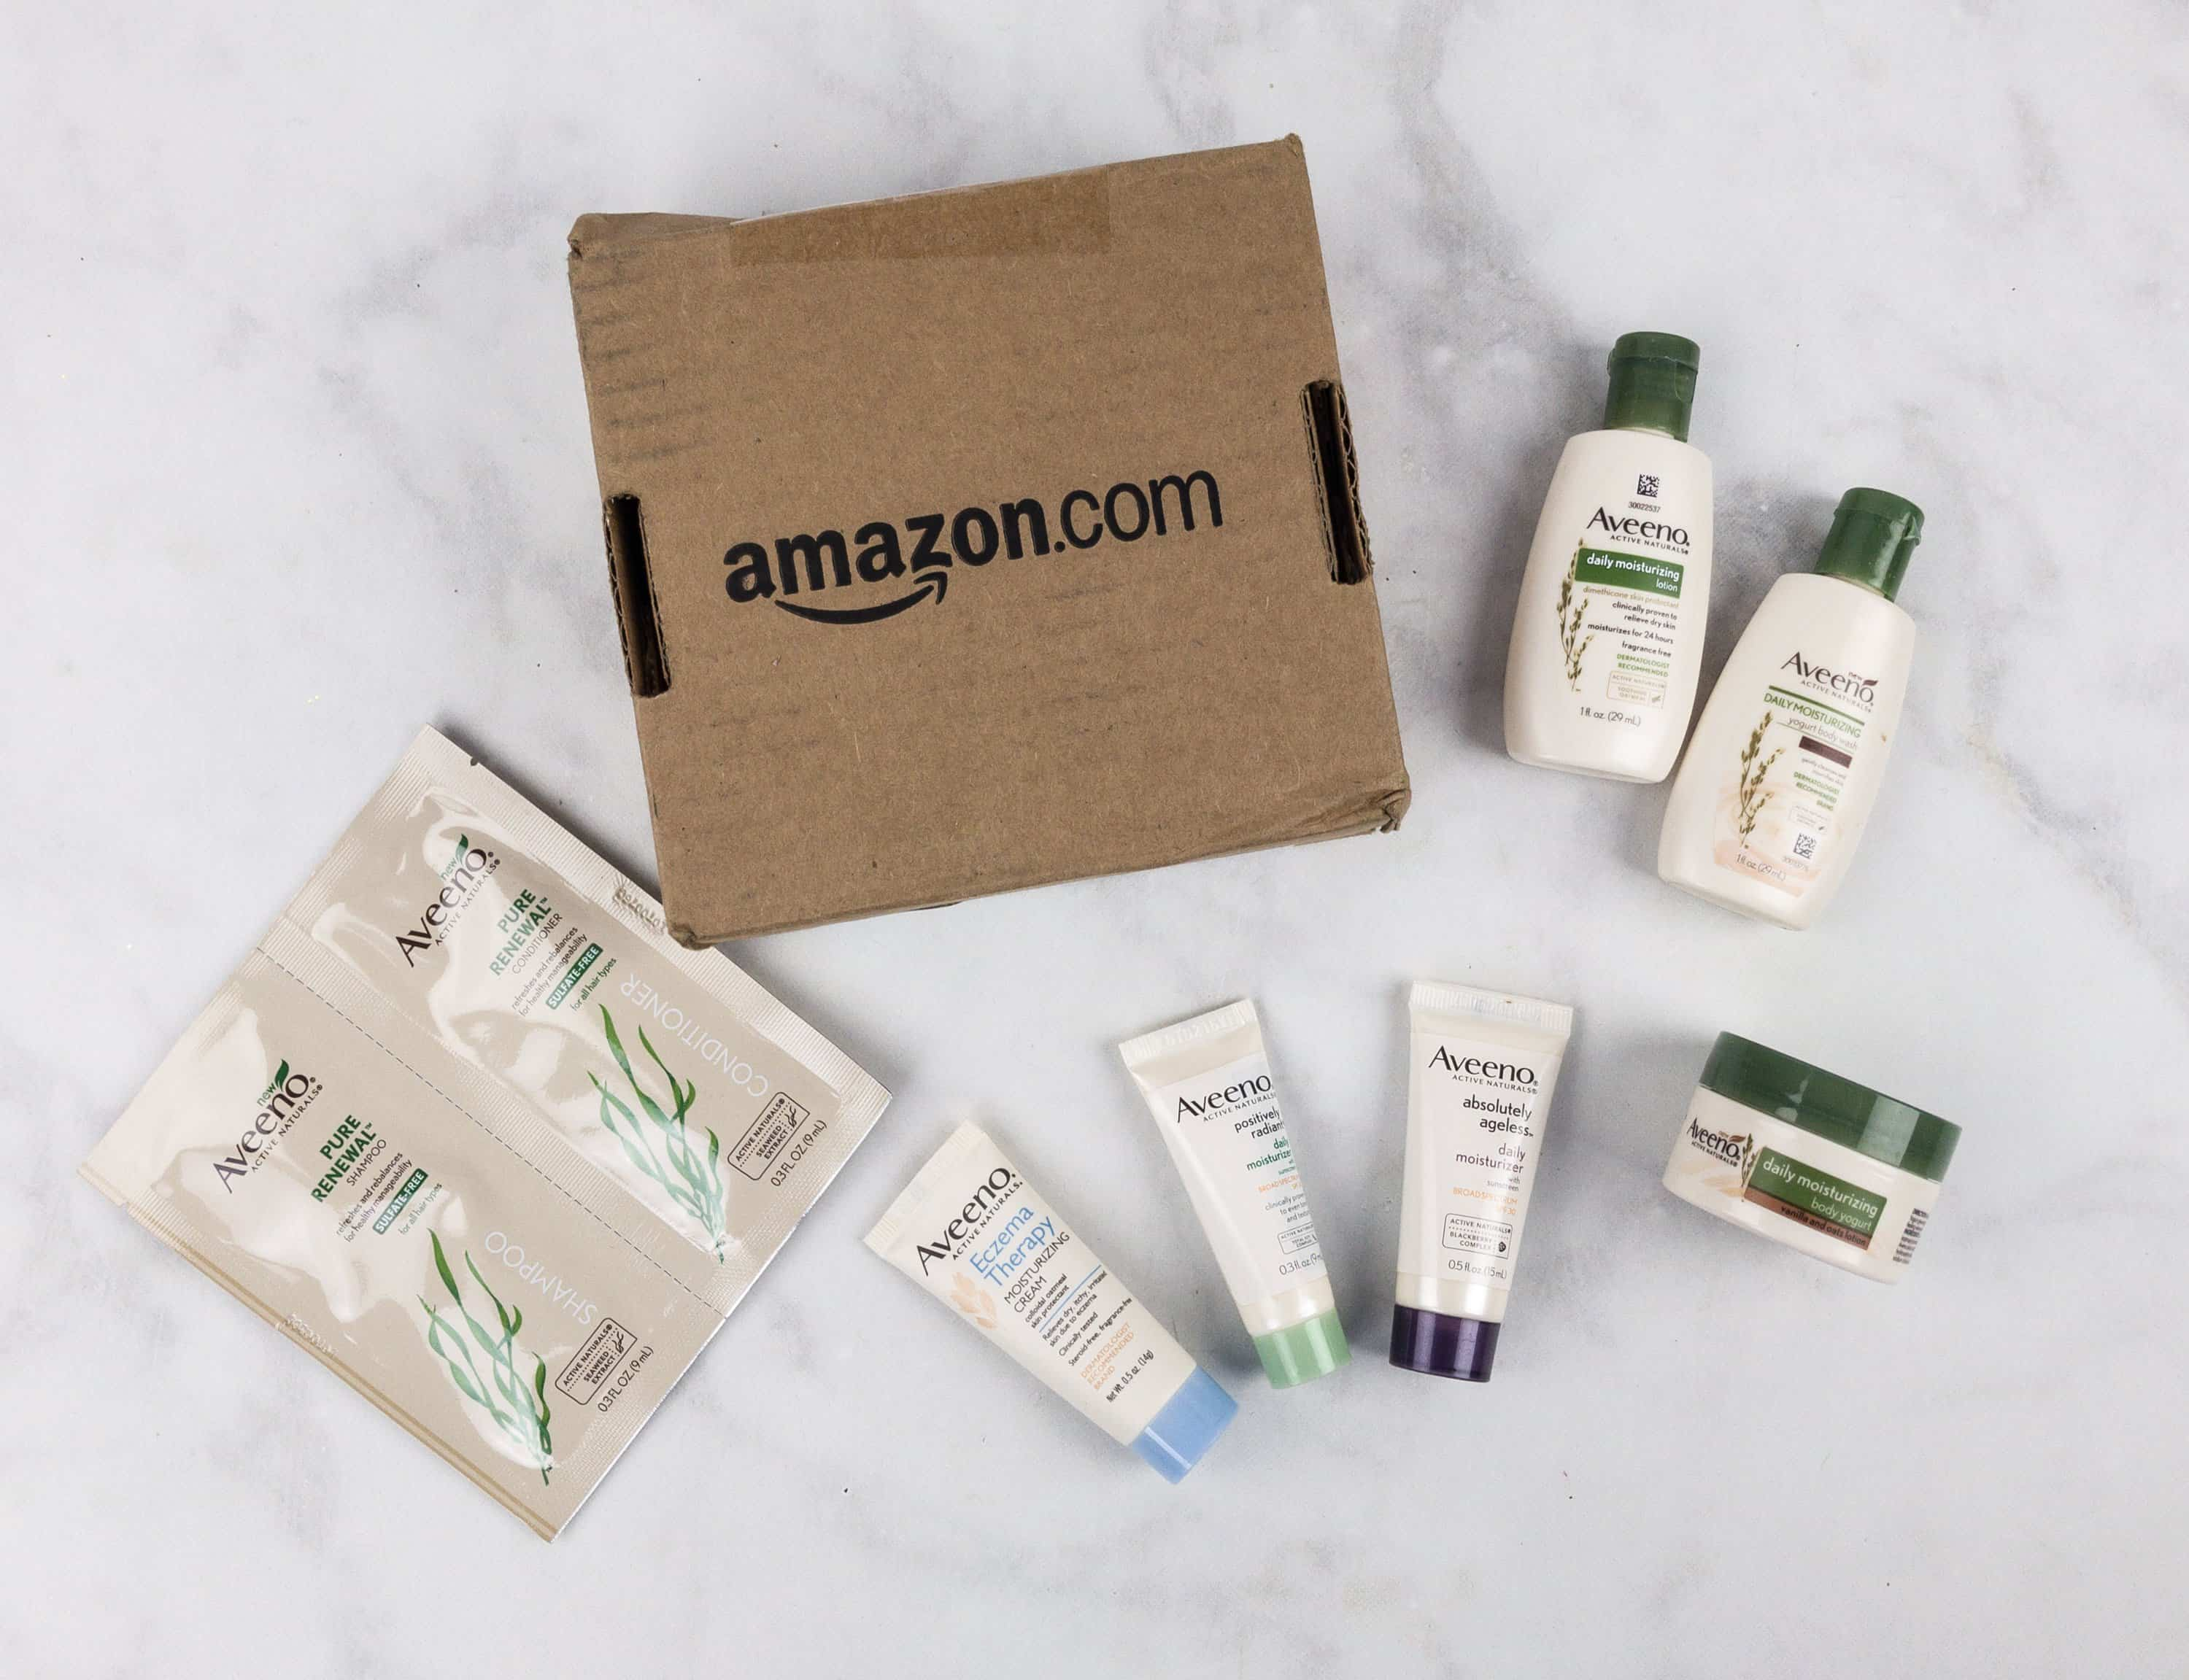 Amazon Prime Aveeno Sample Box Review – FREE After Credit!